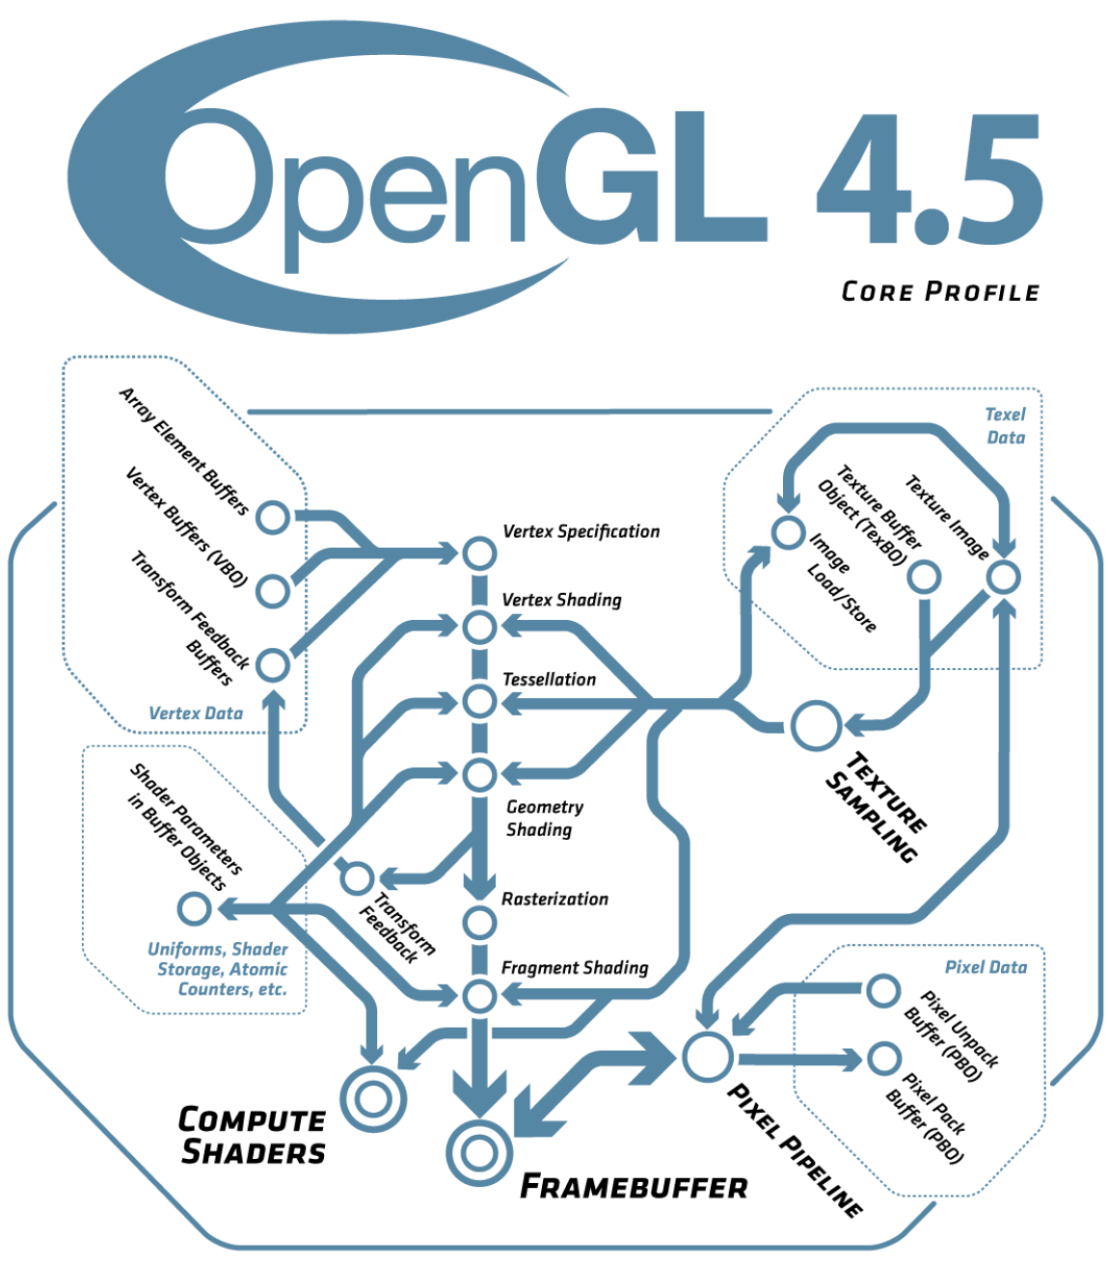 OpenGL 4.5 Pipeline (from khronos) and related chart